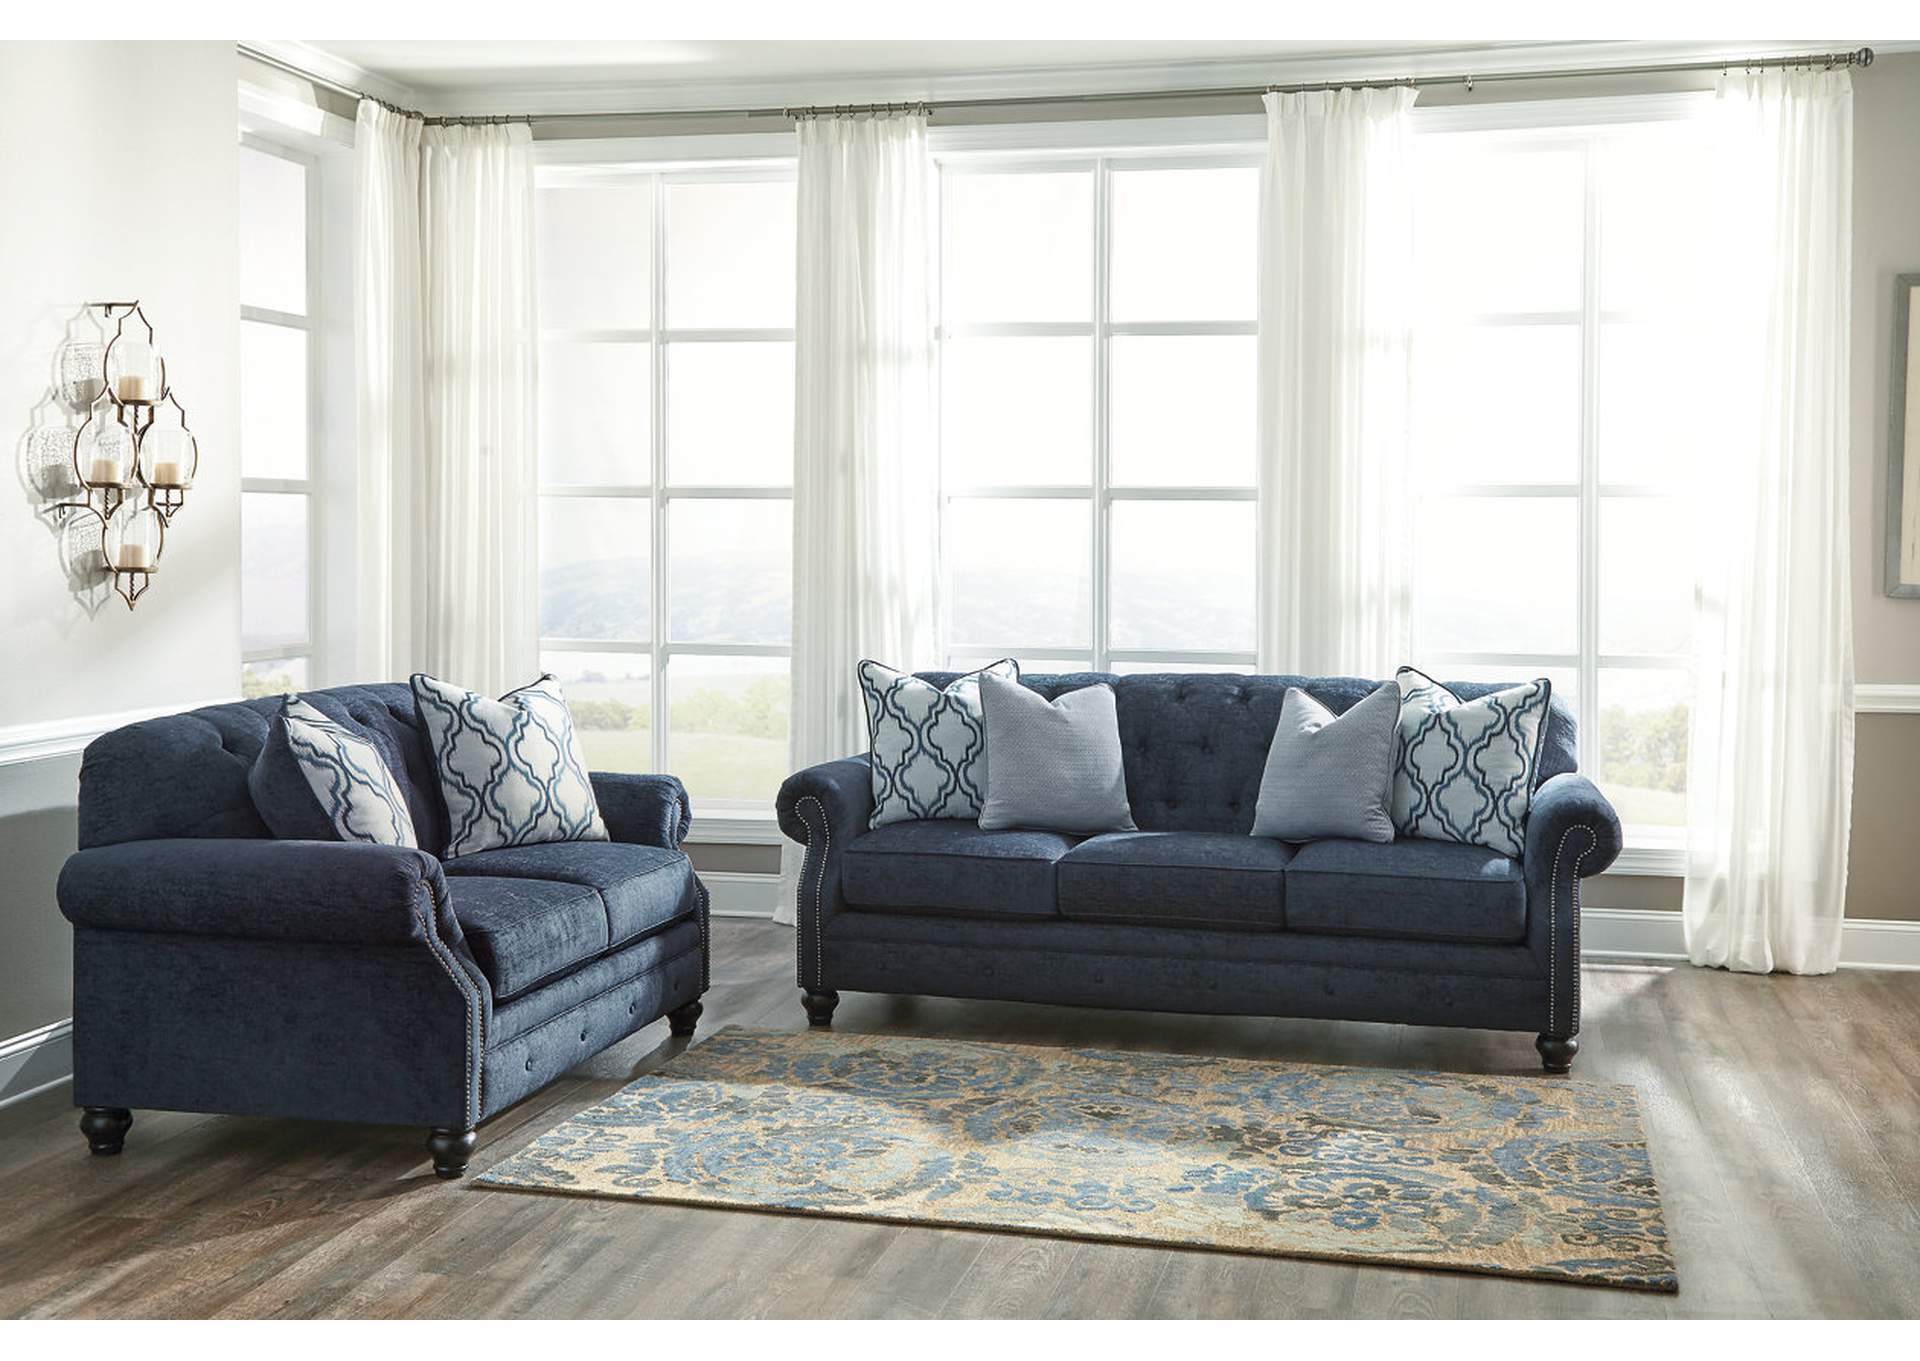 The Furniture Shop Duncanville Tx Lavernia Navy Sofa